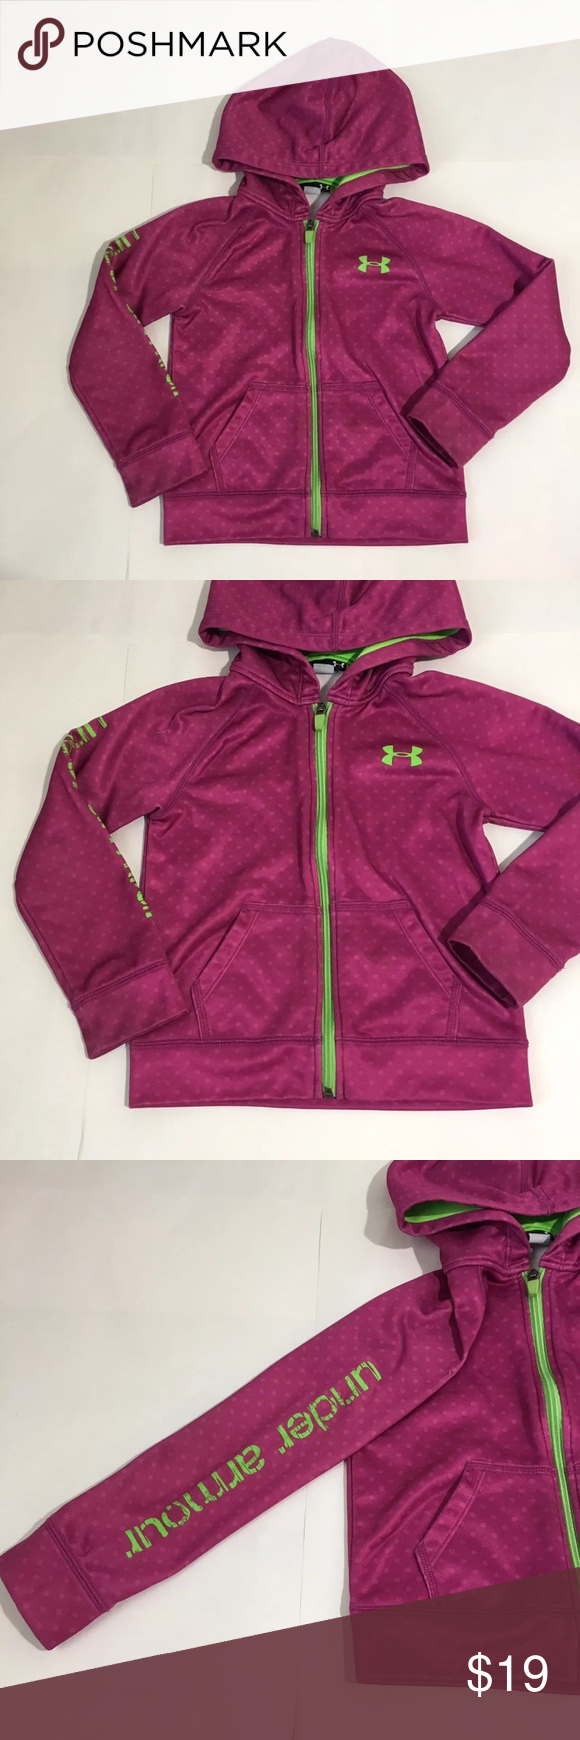 Under Amour Pink Purple Hooded Zip Up Sweater Sz 5 Girls Under ...